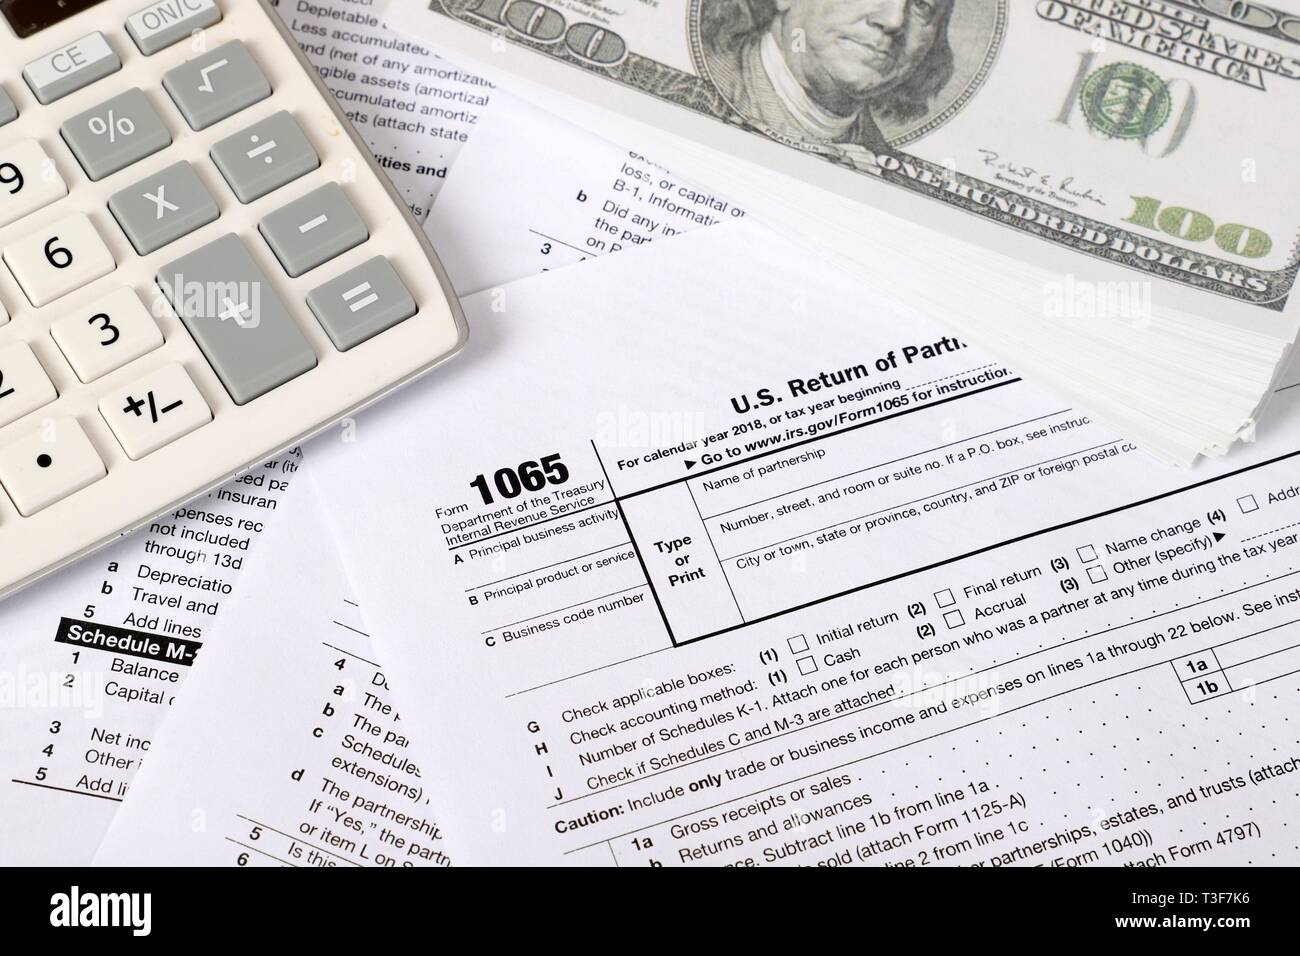 form 1065 calculator  14 tax form lies near hundred dollar bil and calculator on ...